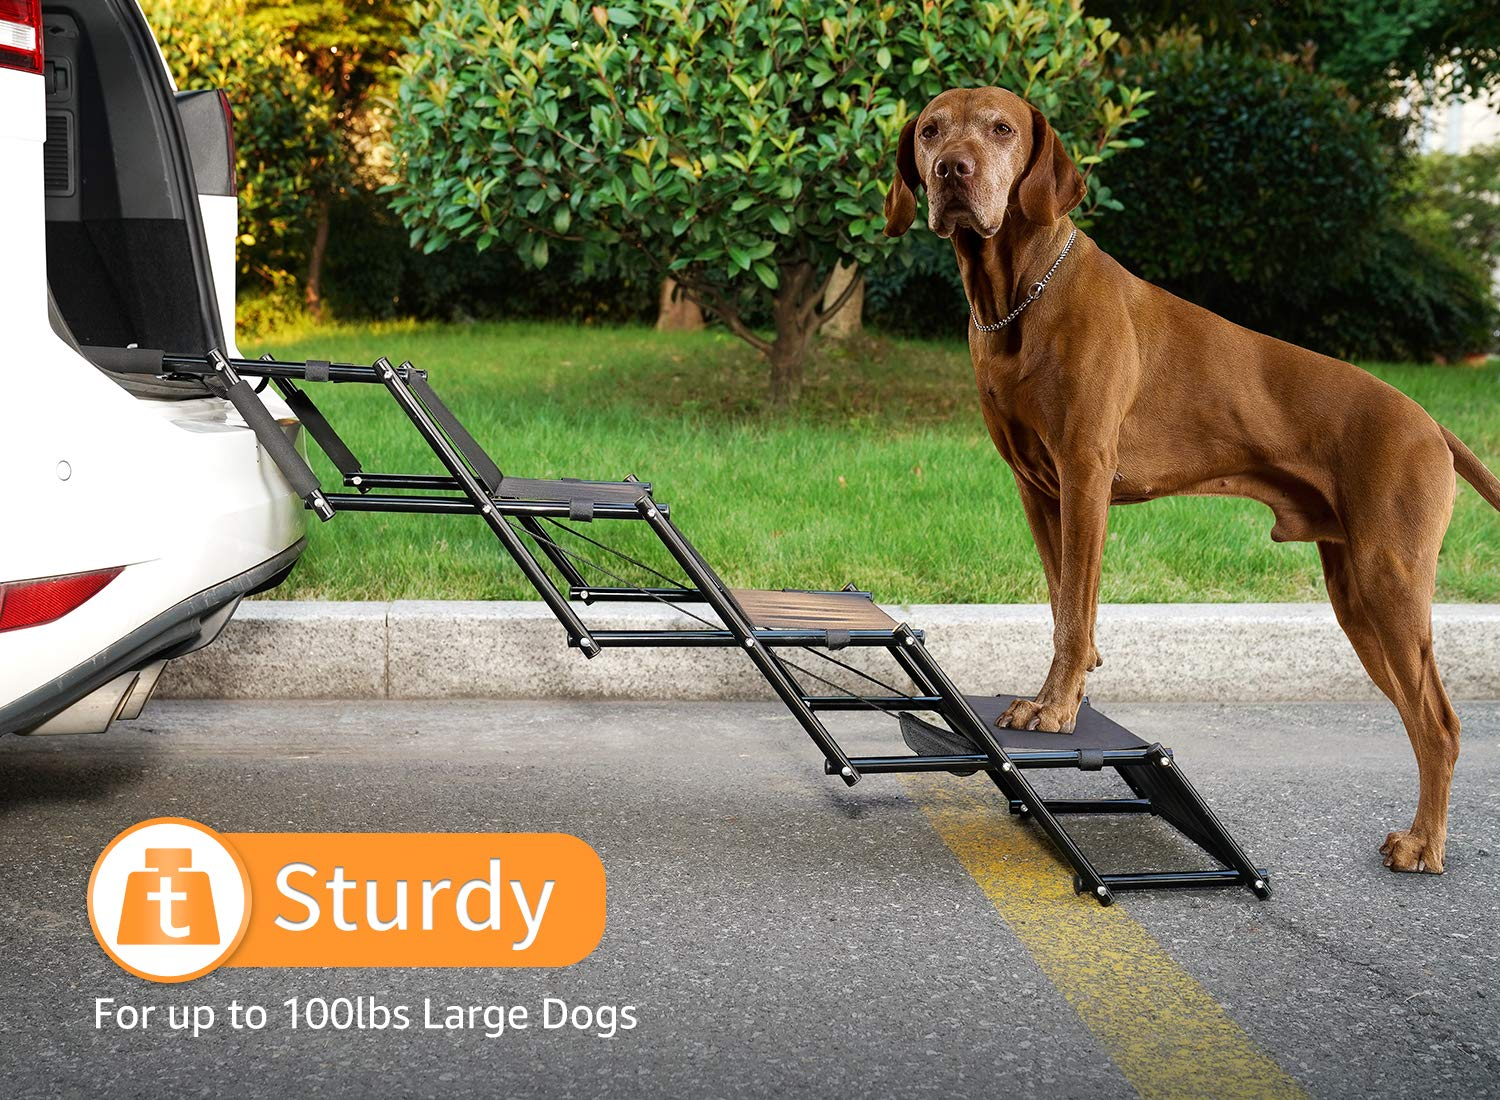 Dog Car Step Stairs Foldable SUKI&SAMI Metal Frame Folding Dog Ramp for Car,Lightweight Portable Large Dog Ladder,for Dogs and Cats,SUVs and Trucks,Couch and Bed,Protect Pets' Joint and Knee by SUKI&SAMI (Image #7)